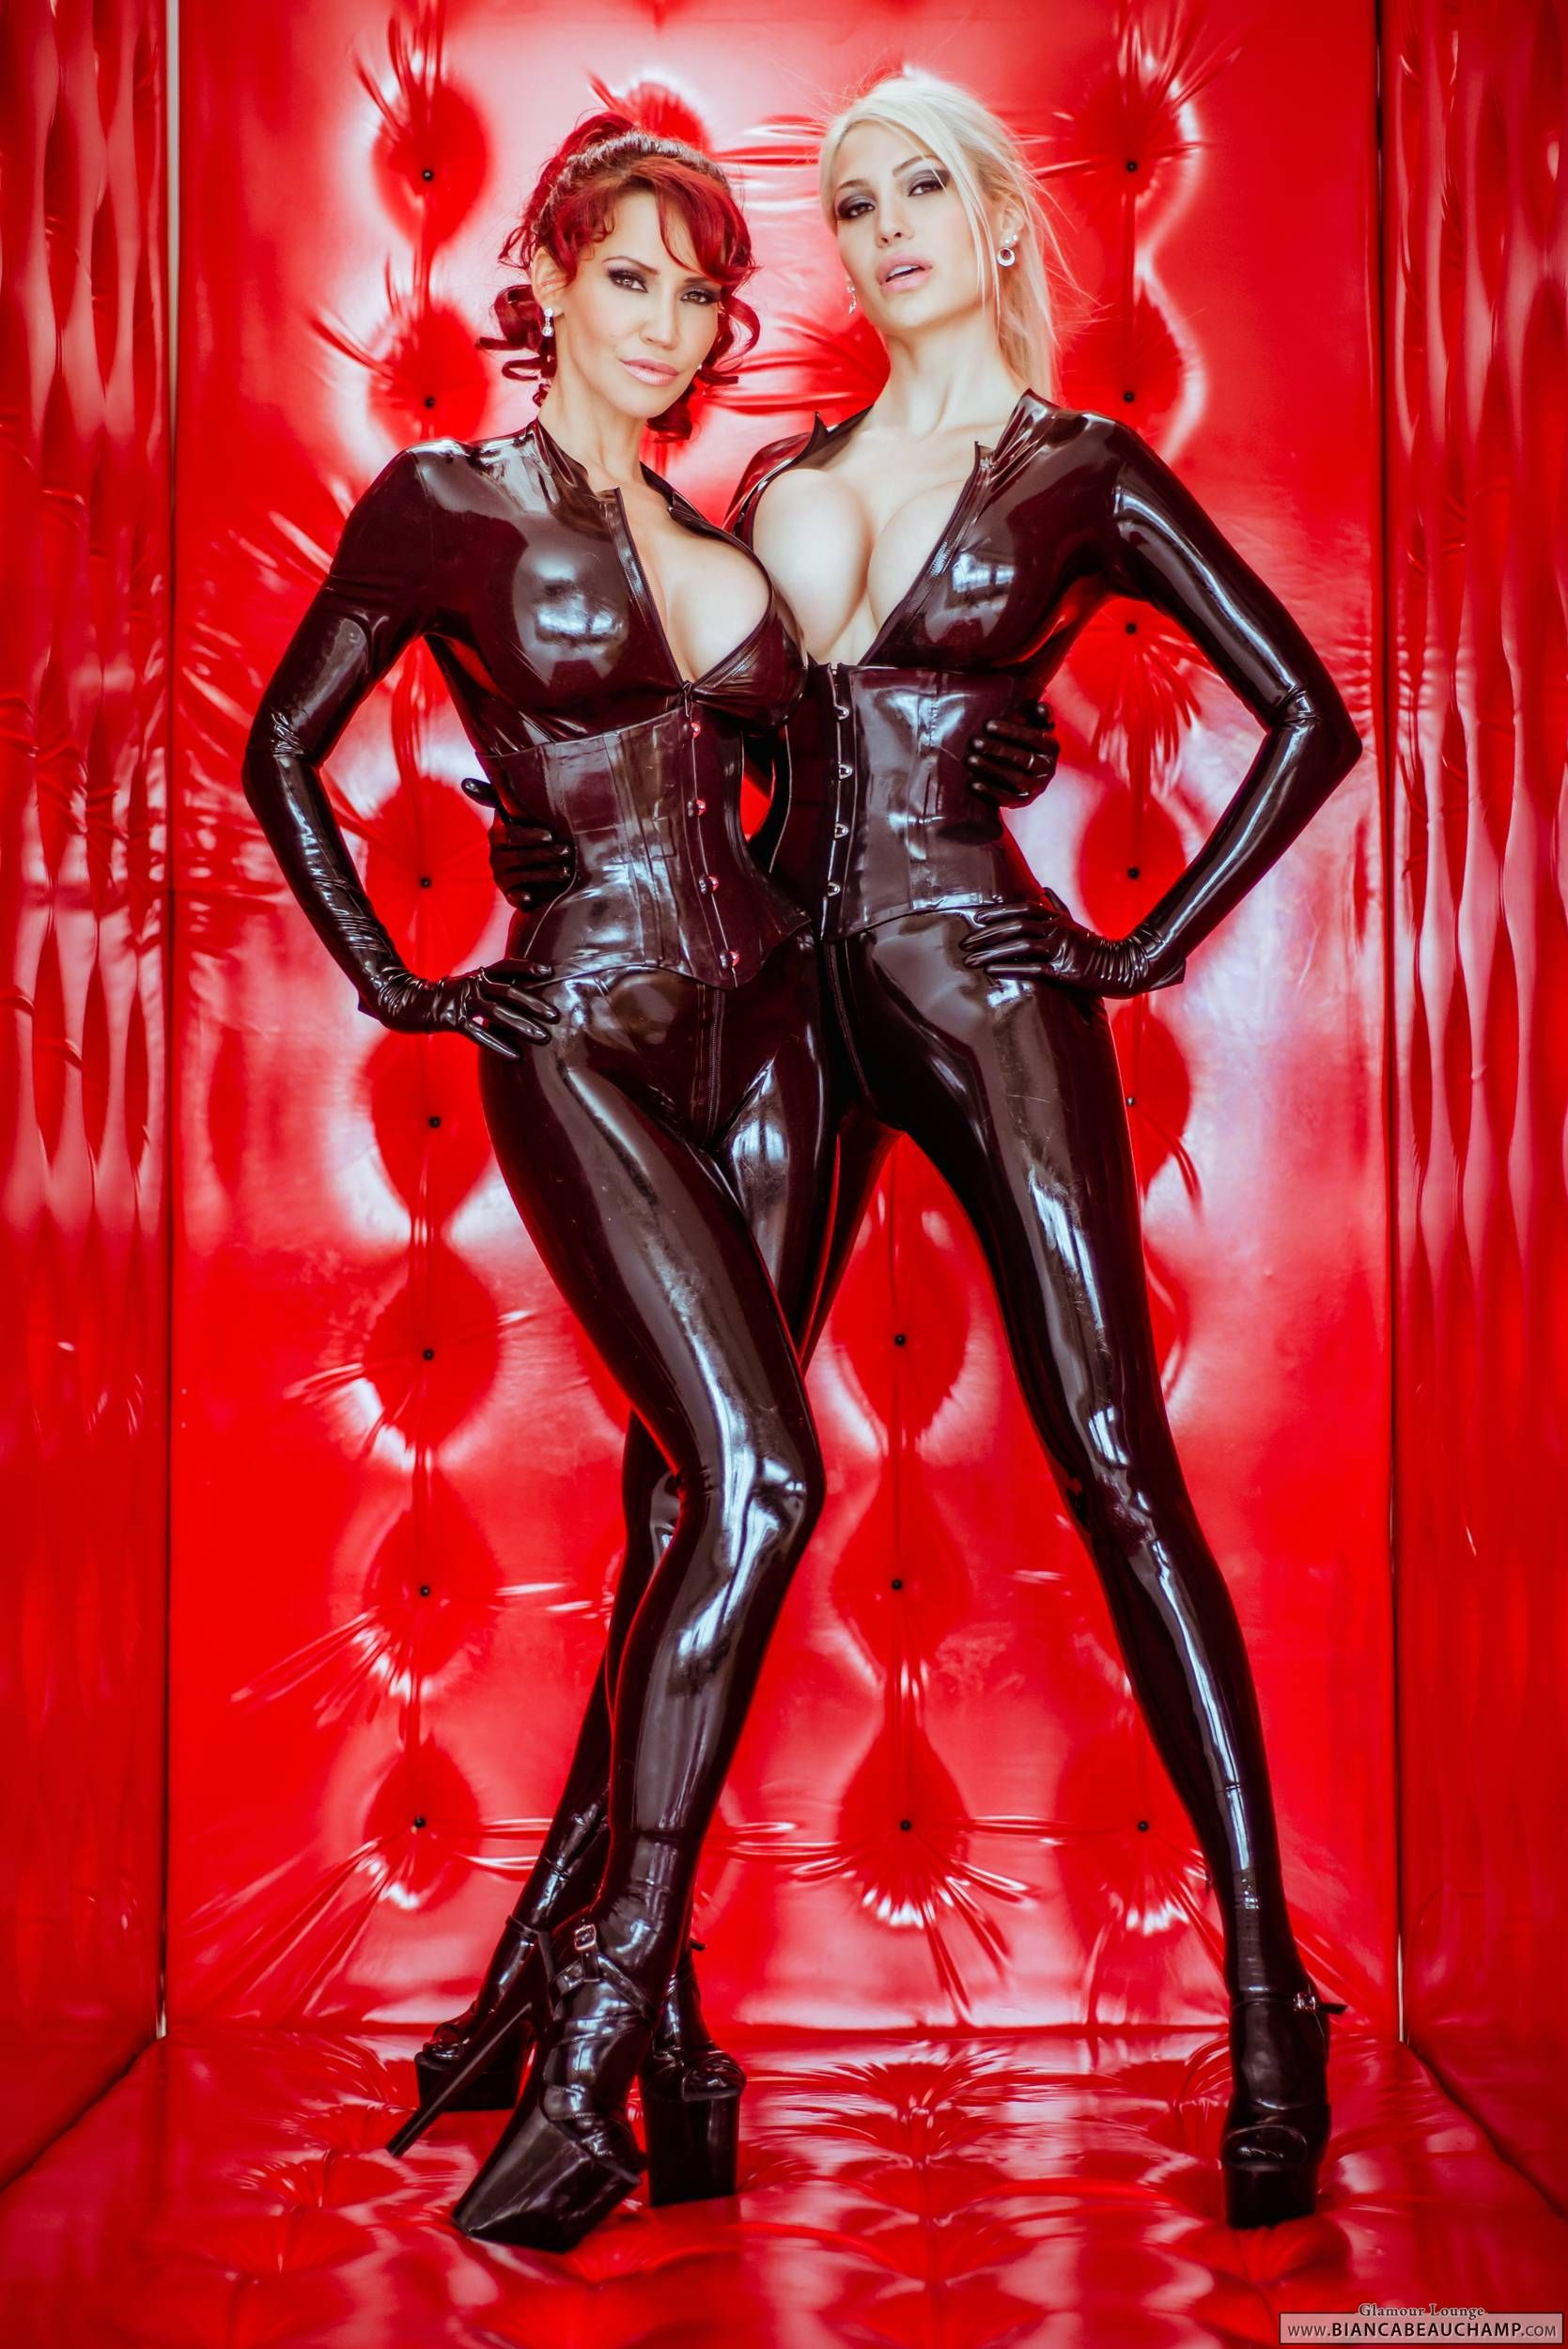 Bianca Beauchamp Dianne Kirsch Wonsch In Uberbabe Double Trouble Latex Photoshoot